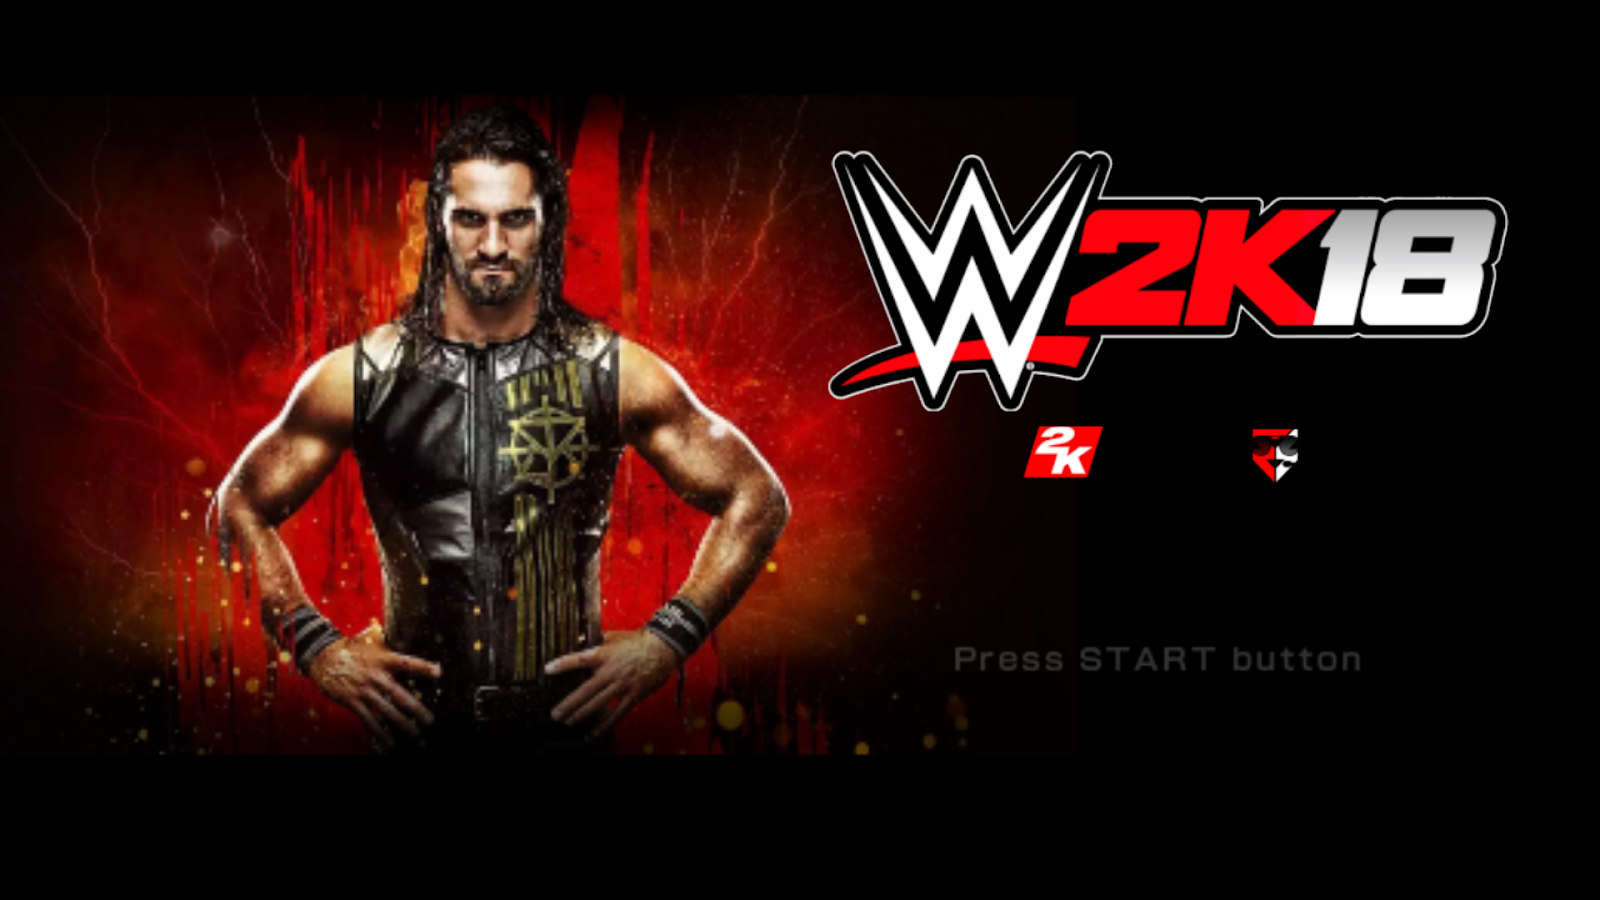 WWE 2K18 PPSSPP GAME DOWNLOAD ANDROID MOBILE AND PC COMPUTER